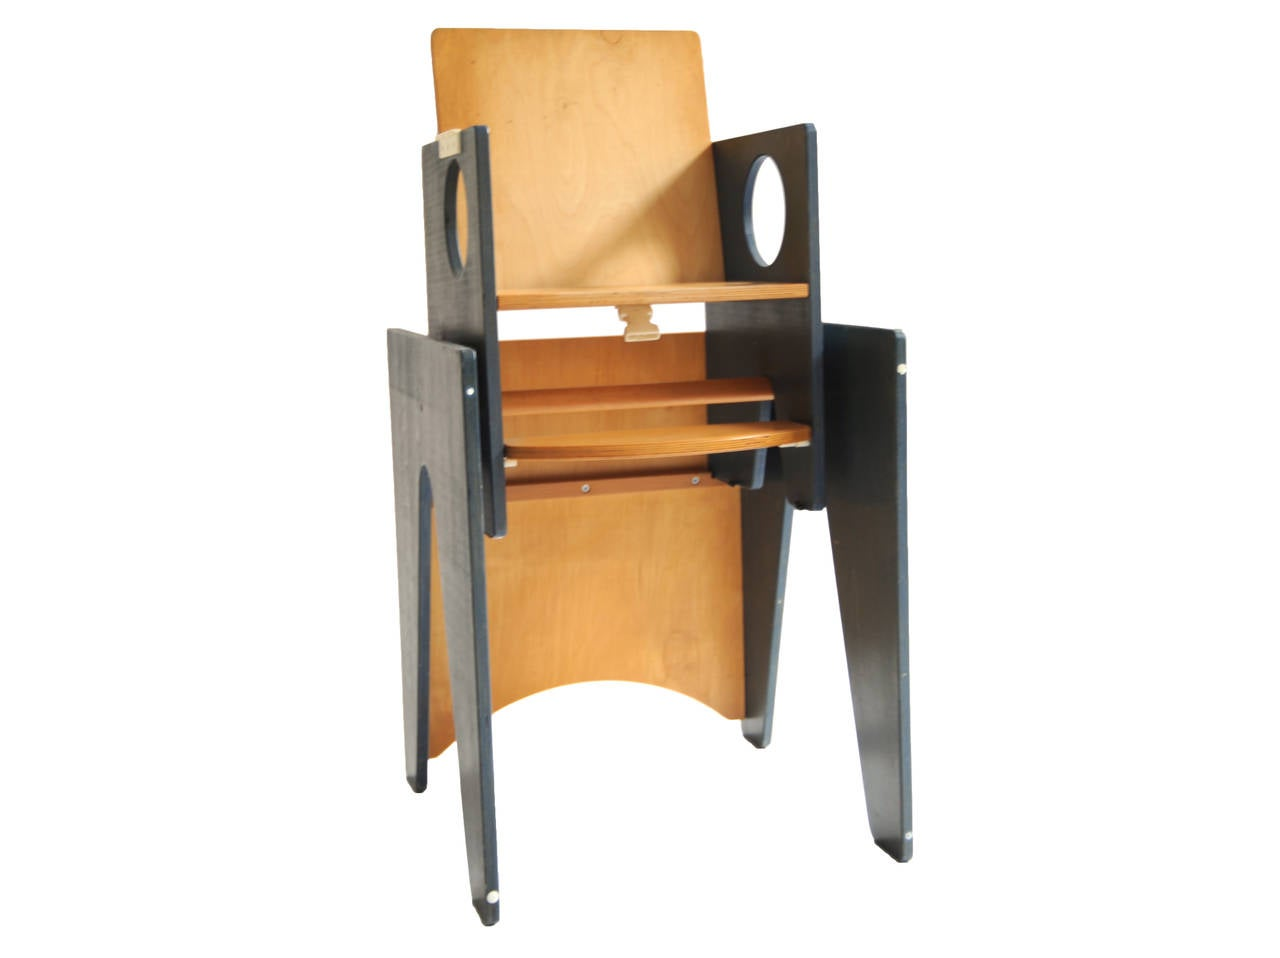 Multifunctional Desk and Chair Set or High Chair by Bopita, circa 1960 2